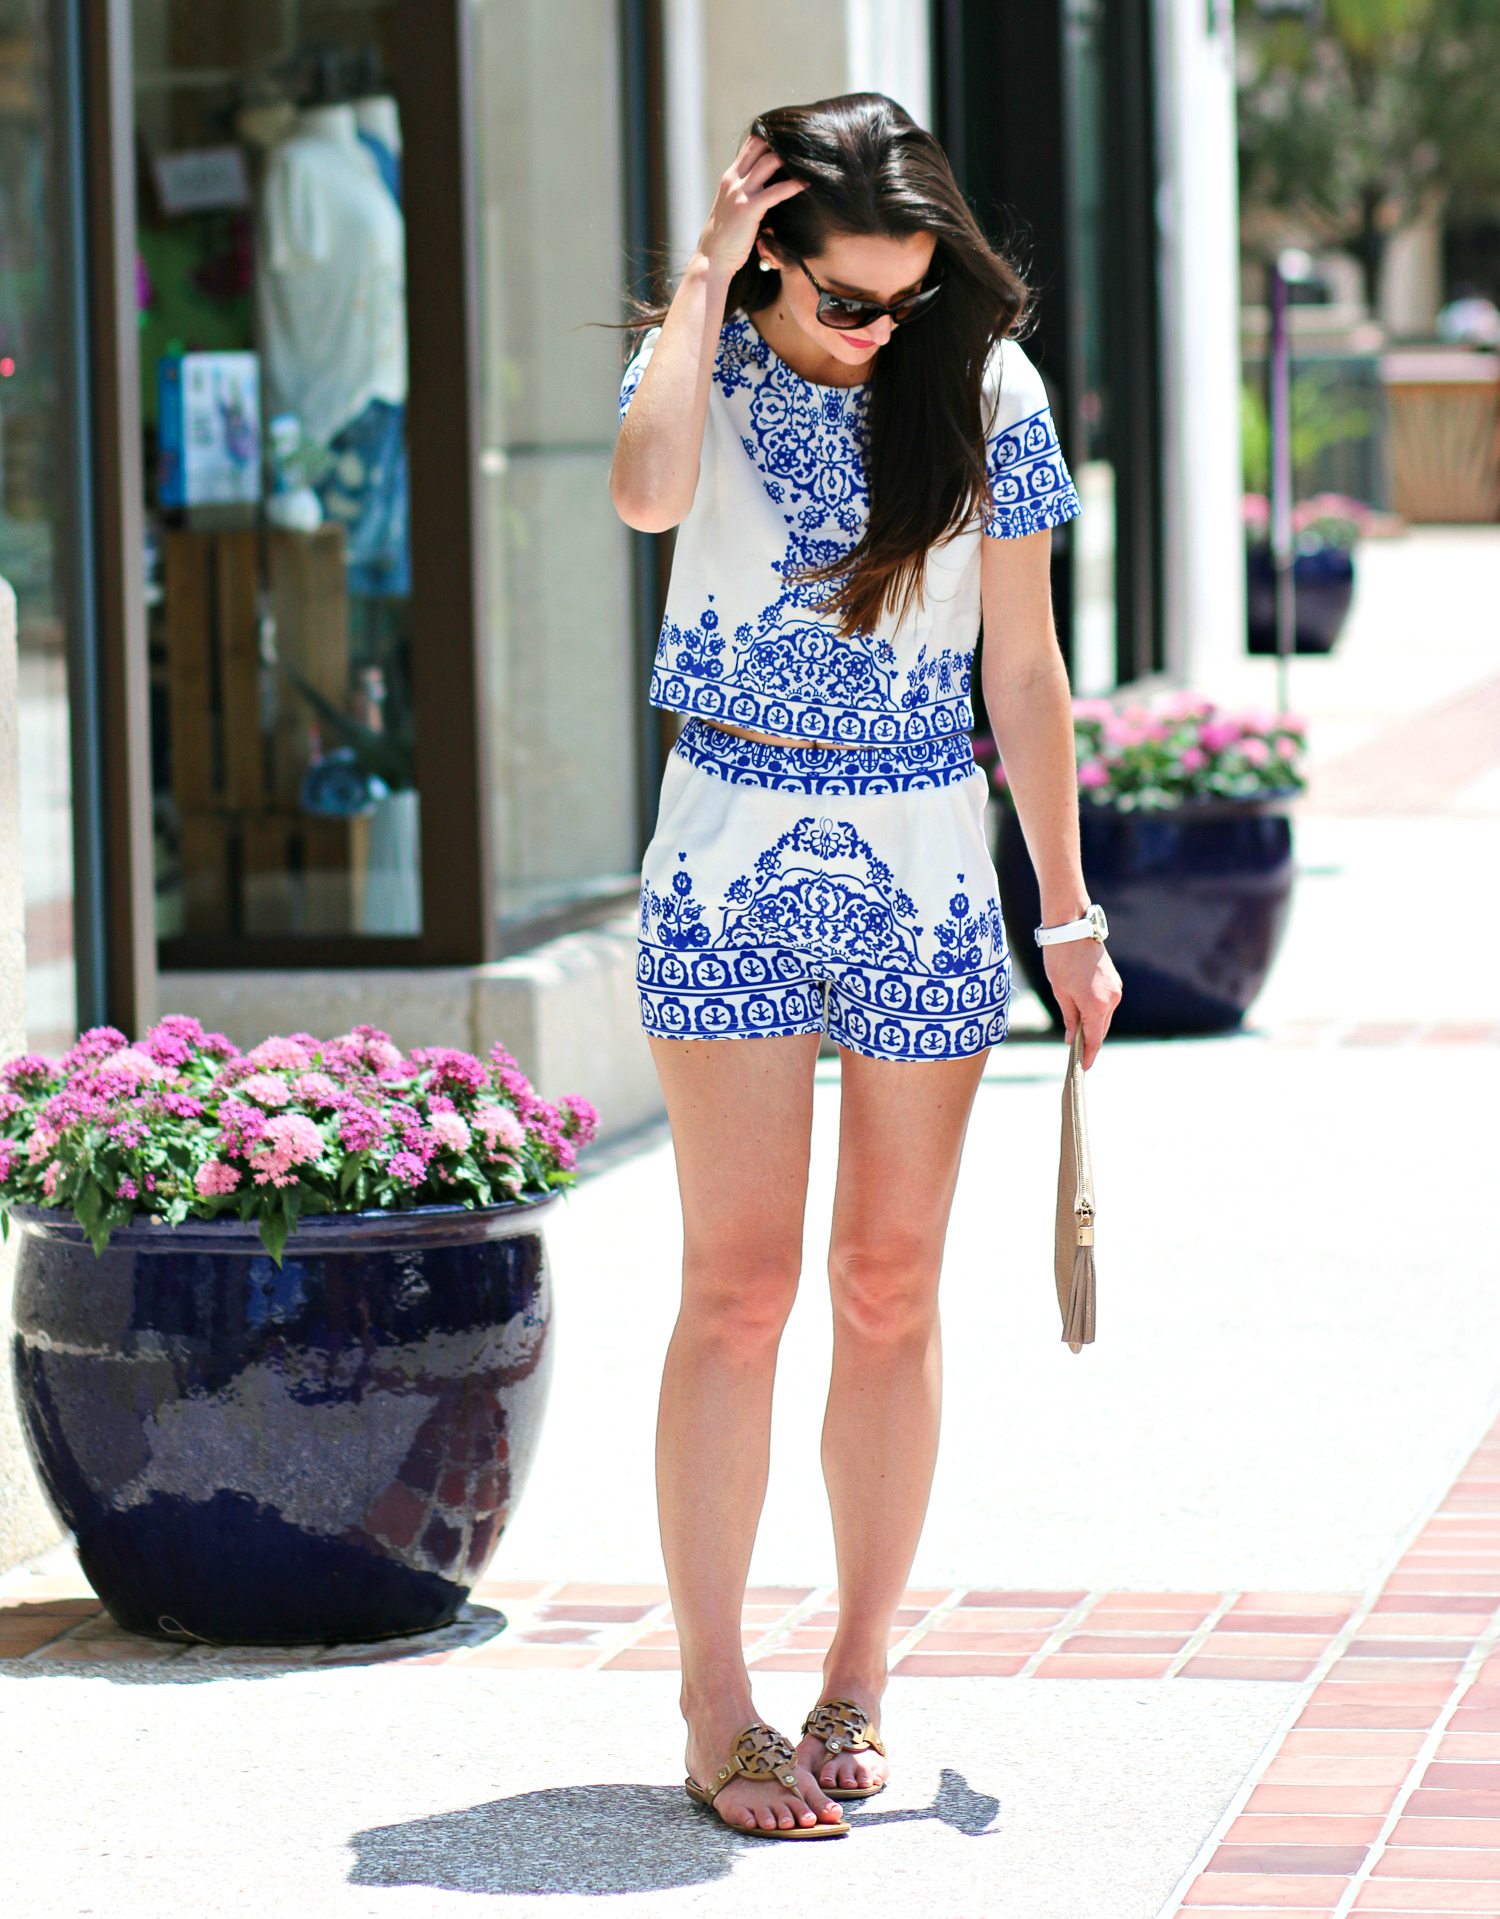 SheIn Matching Crop Top and Shorts Set in Pretty Blue Porcelain Print